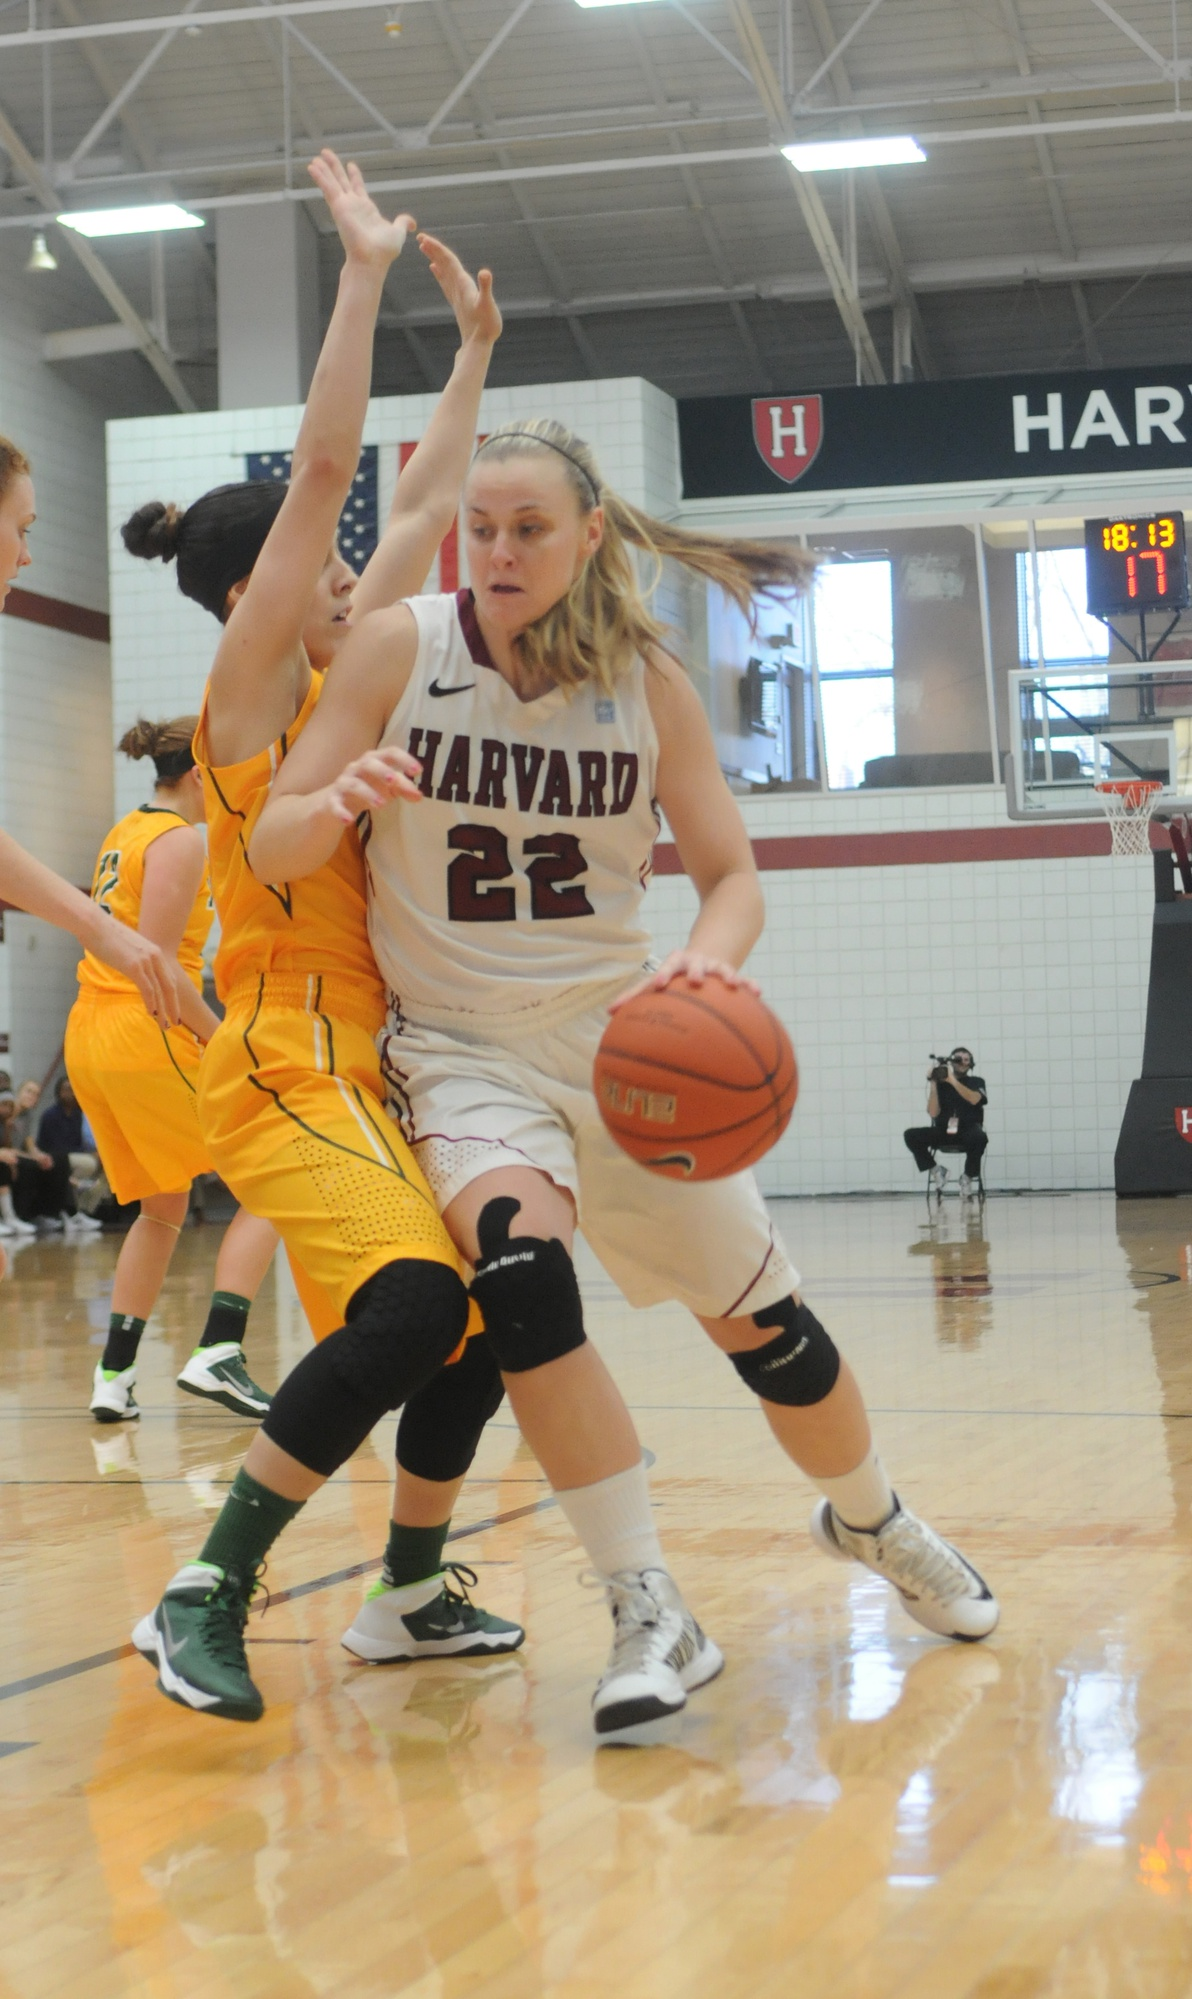 Co-captain Christine Clark led all scorers with 23 points, but couldn't help the team from falling to Princeton, 69-64.